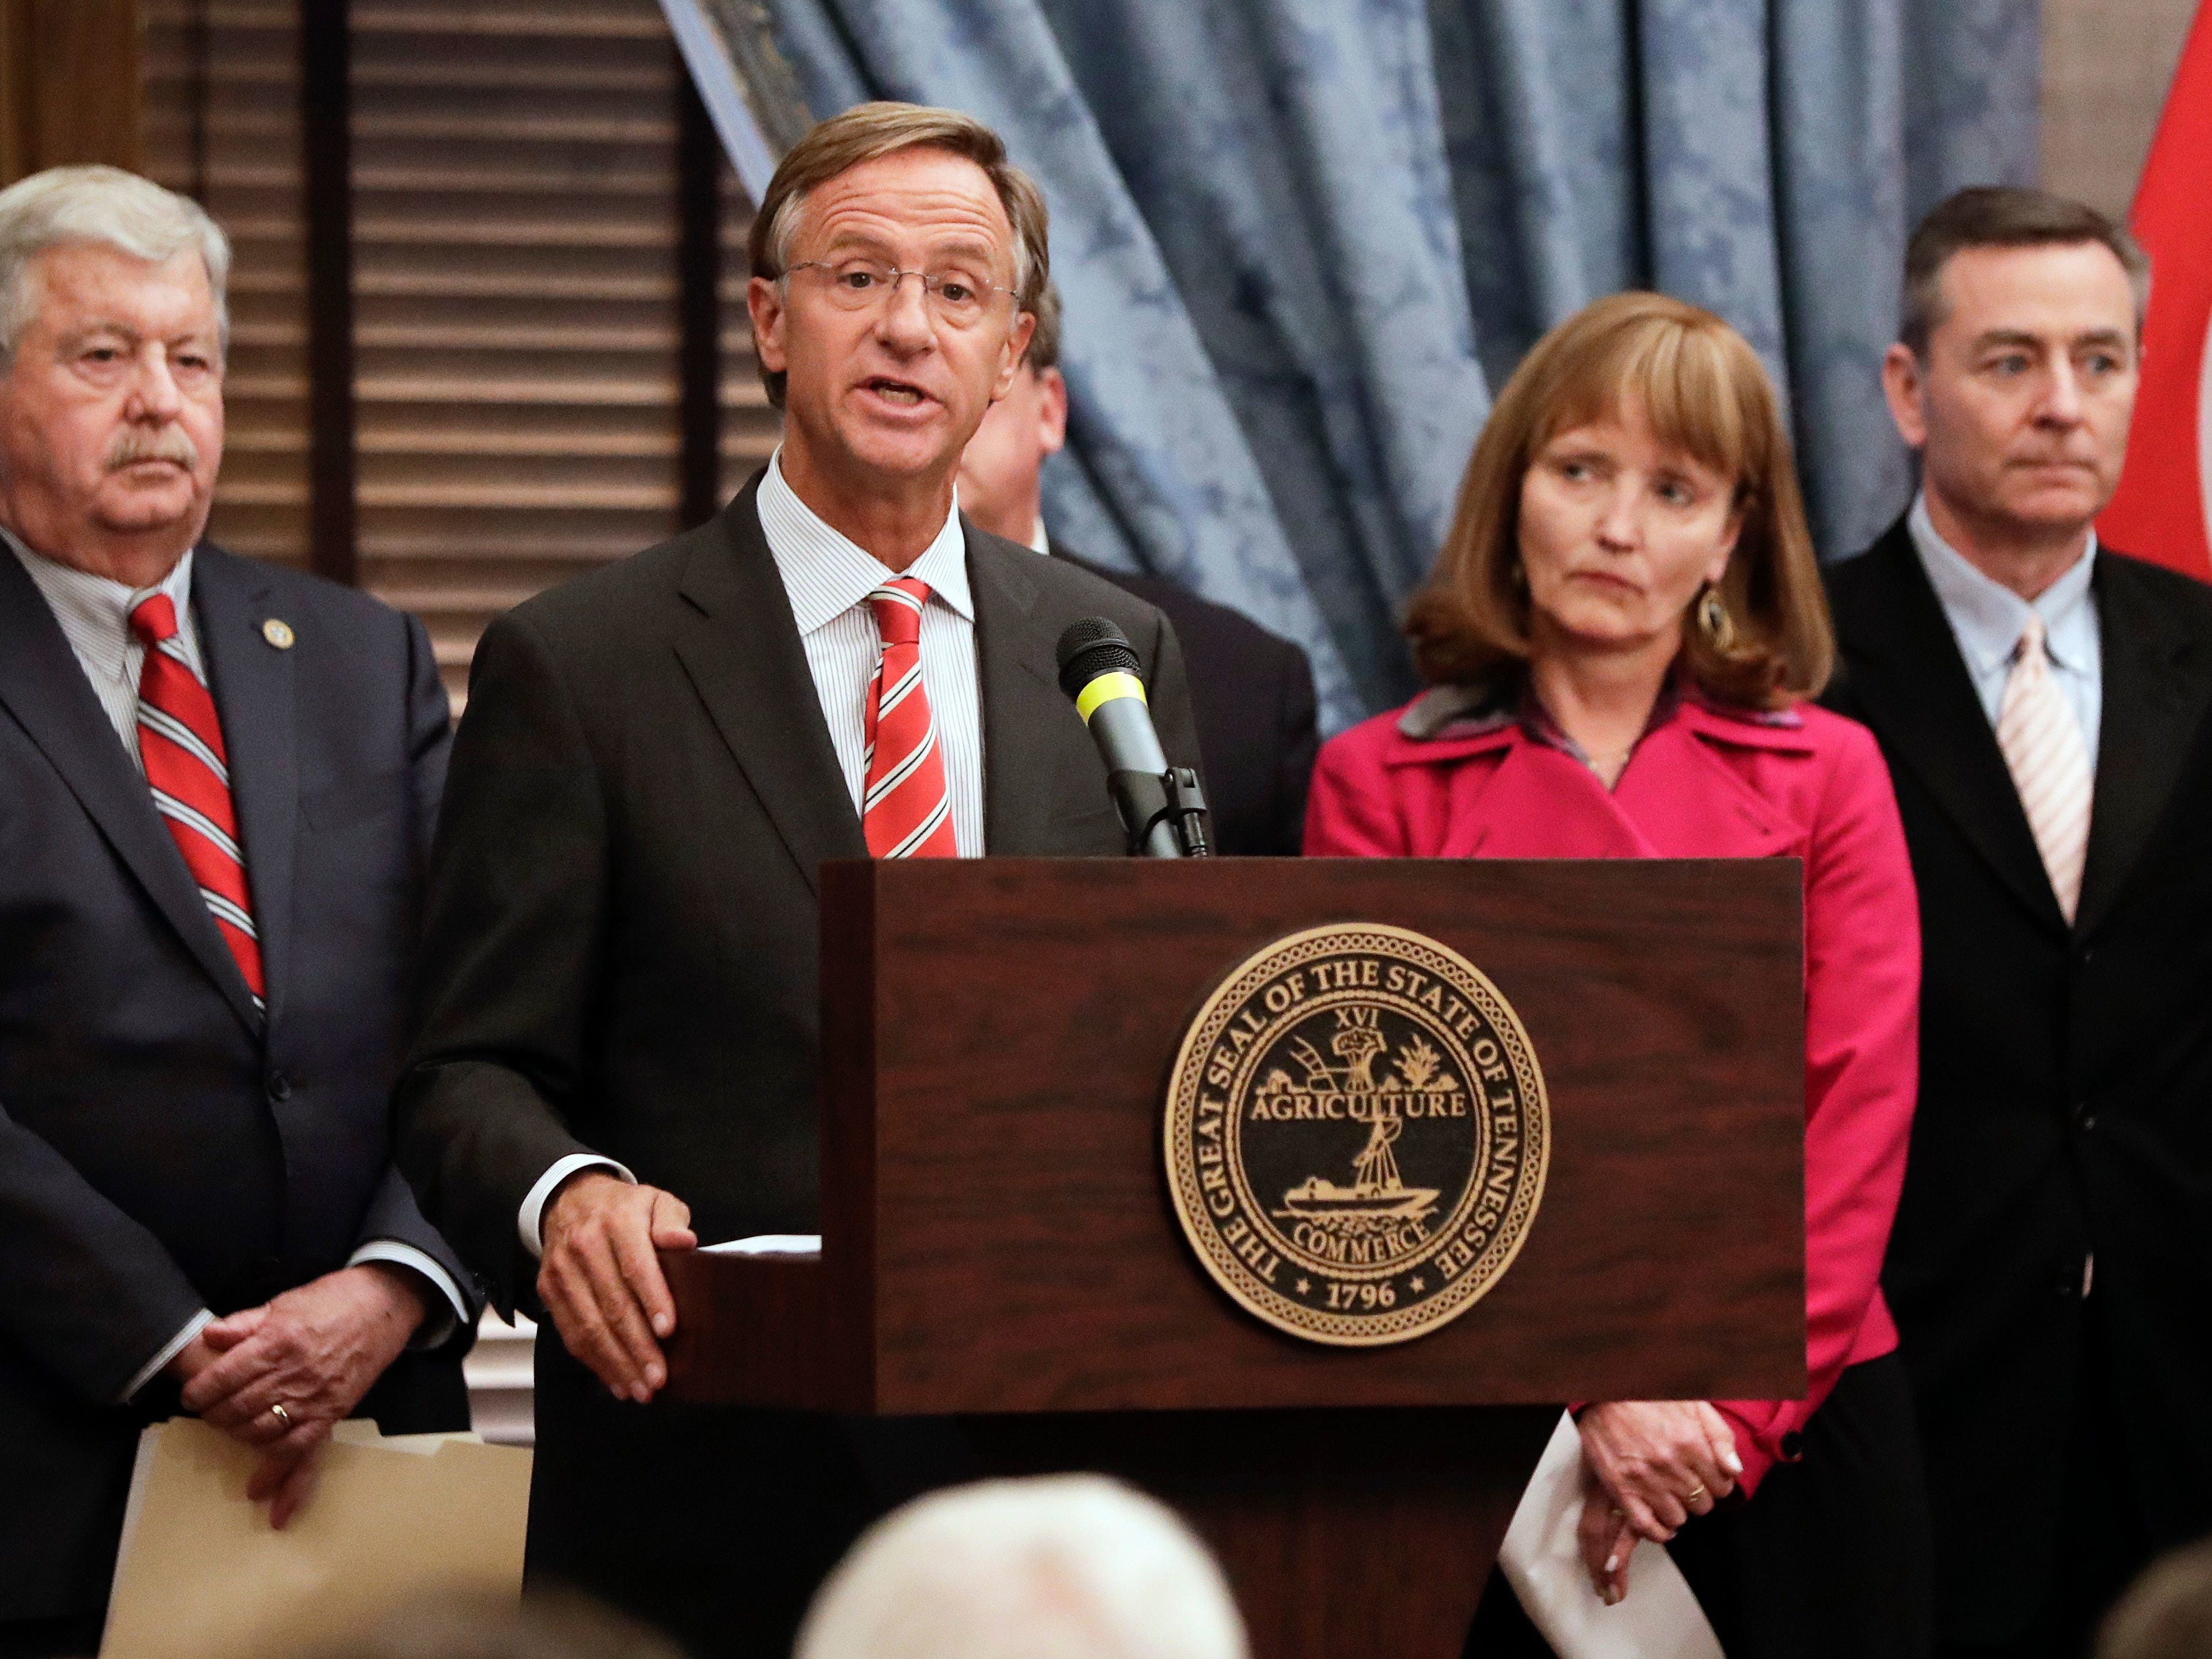 Tennessee Gov. Bill Haslam announces a joint state plan to address the opioid crisis Jan. 22, 2018, in Nashville. Looking on are Senate Speaker Randy McNally, left, R-Oak Ridge; House Speaker Beth Harwell, R-Nashville; and Rep. Glen Casada, R-Franklin.